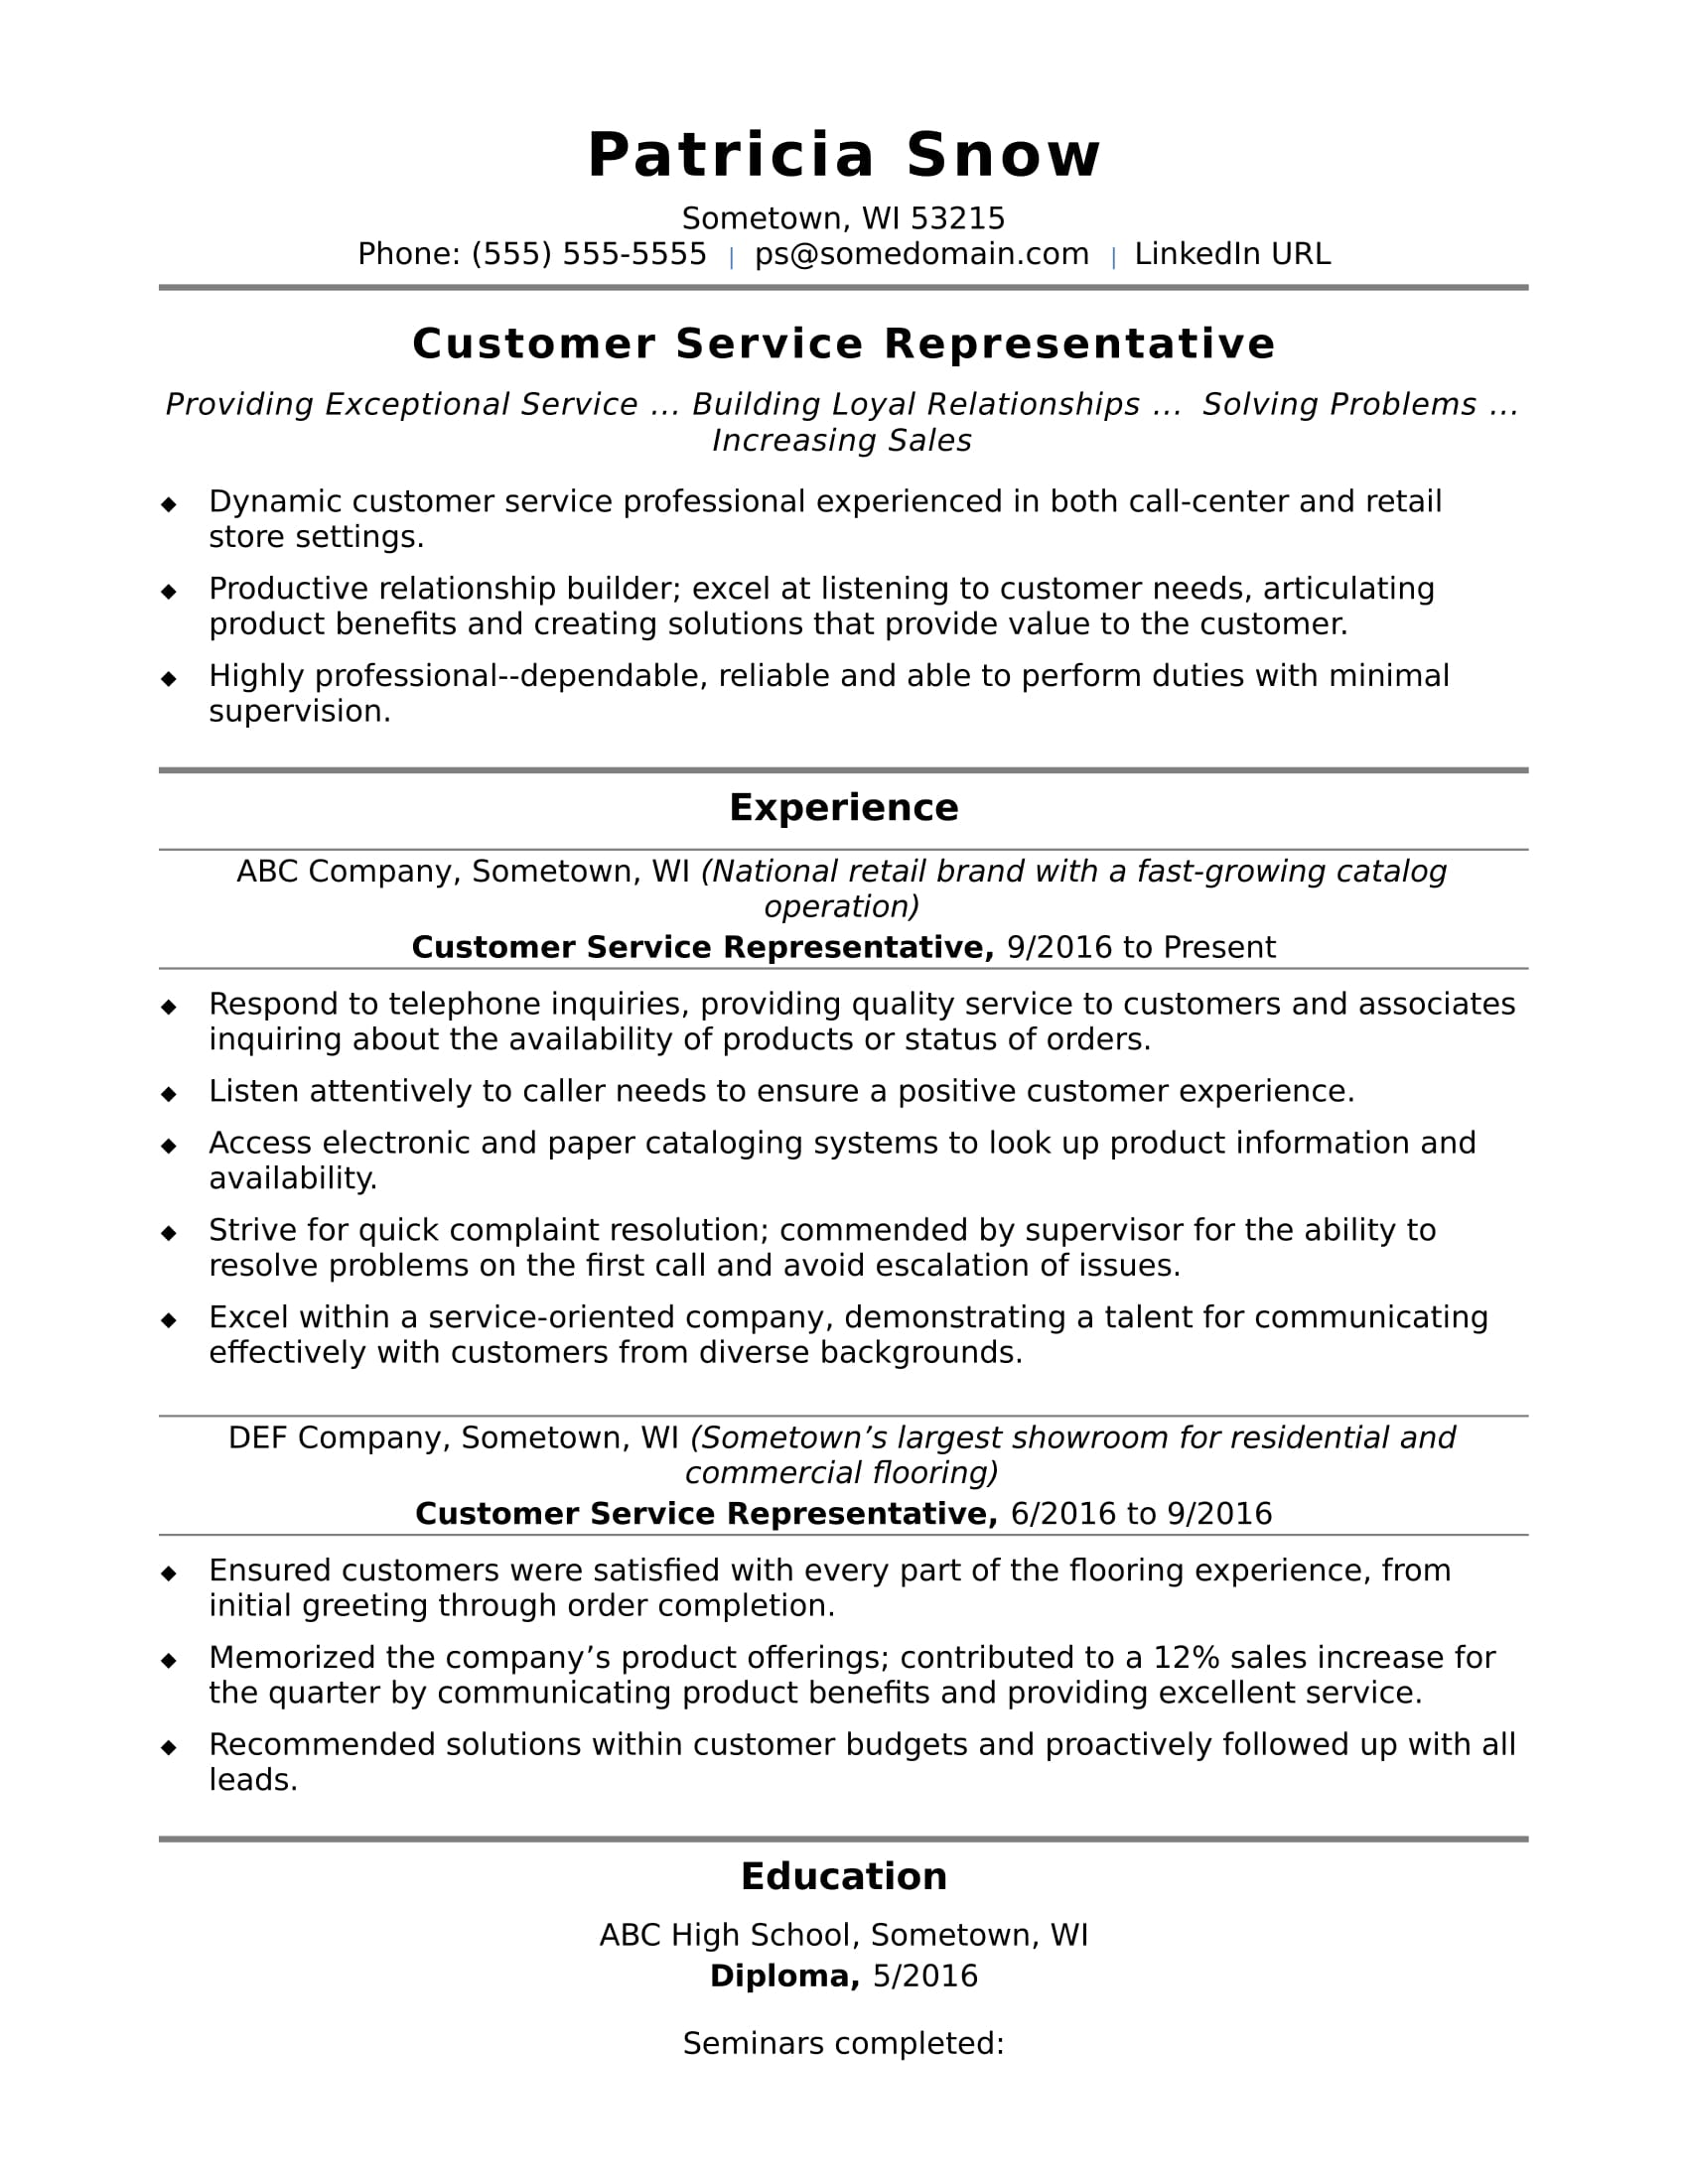 customer service representative resume sample monster entry level examples training and Resume Entry Level Customer Service Resume Examples